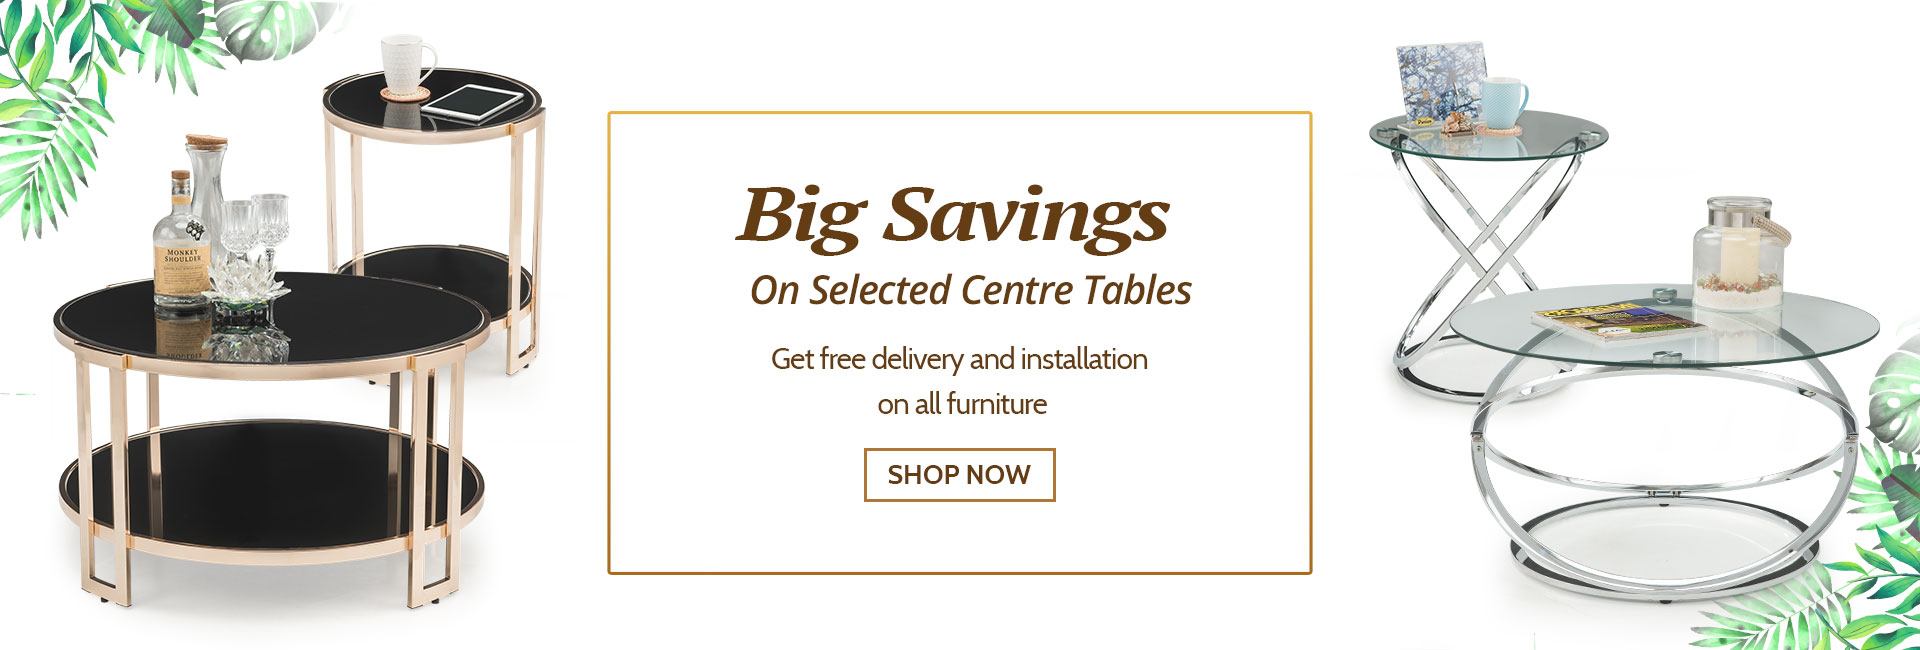 Big Savings On Coffee Tables !